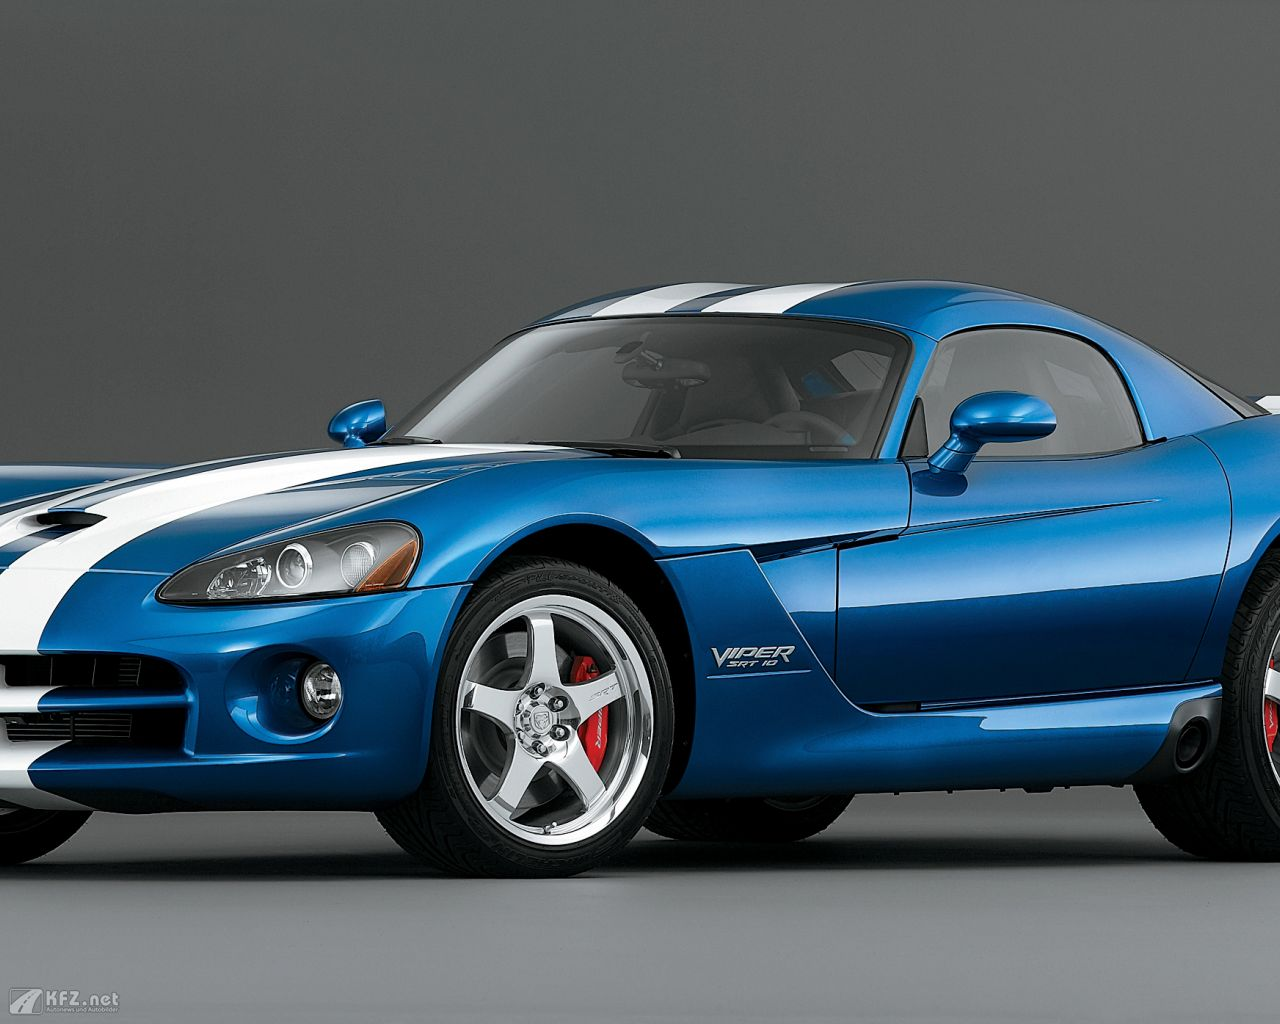 chrysler-dodge-viper-1280x1024-8